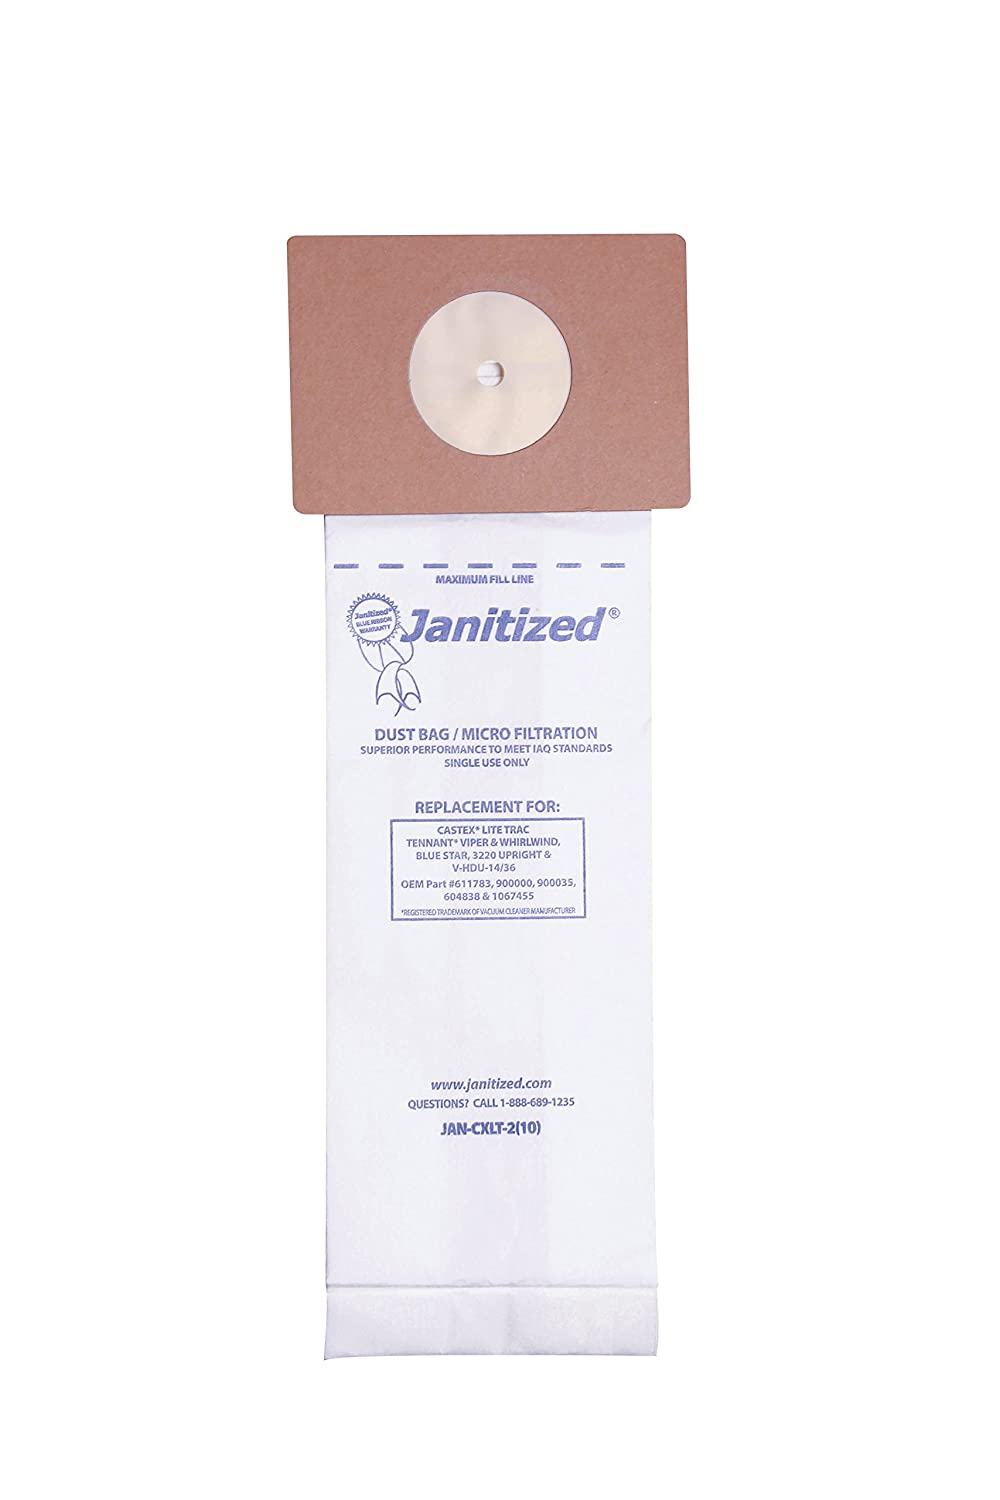 Amazon.com: janitized jan-cxlt-2 (10) Premium Sustitución ...